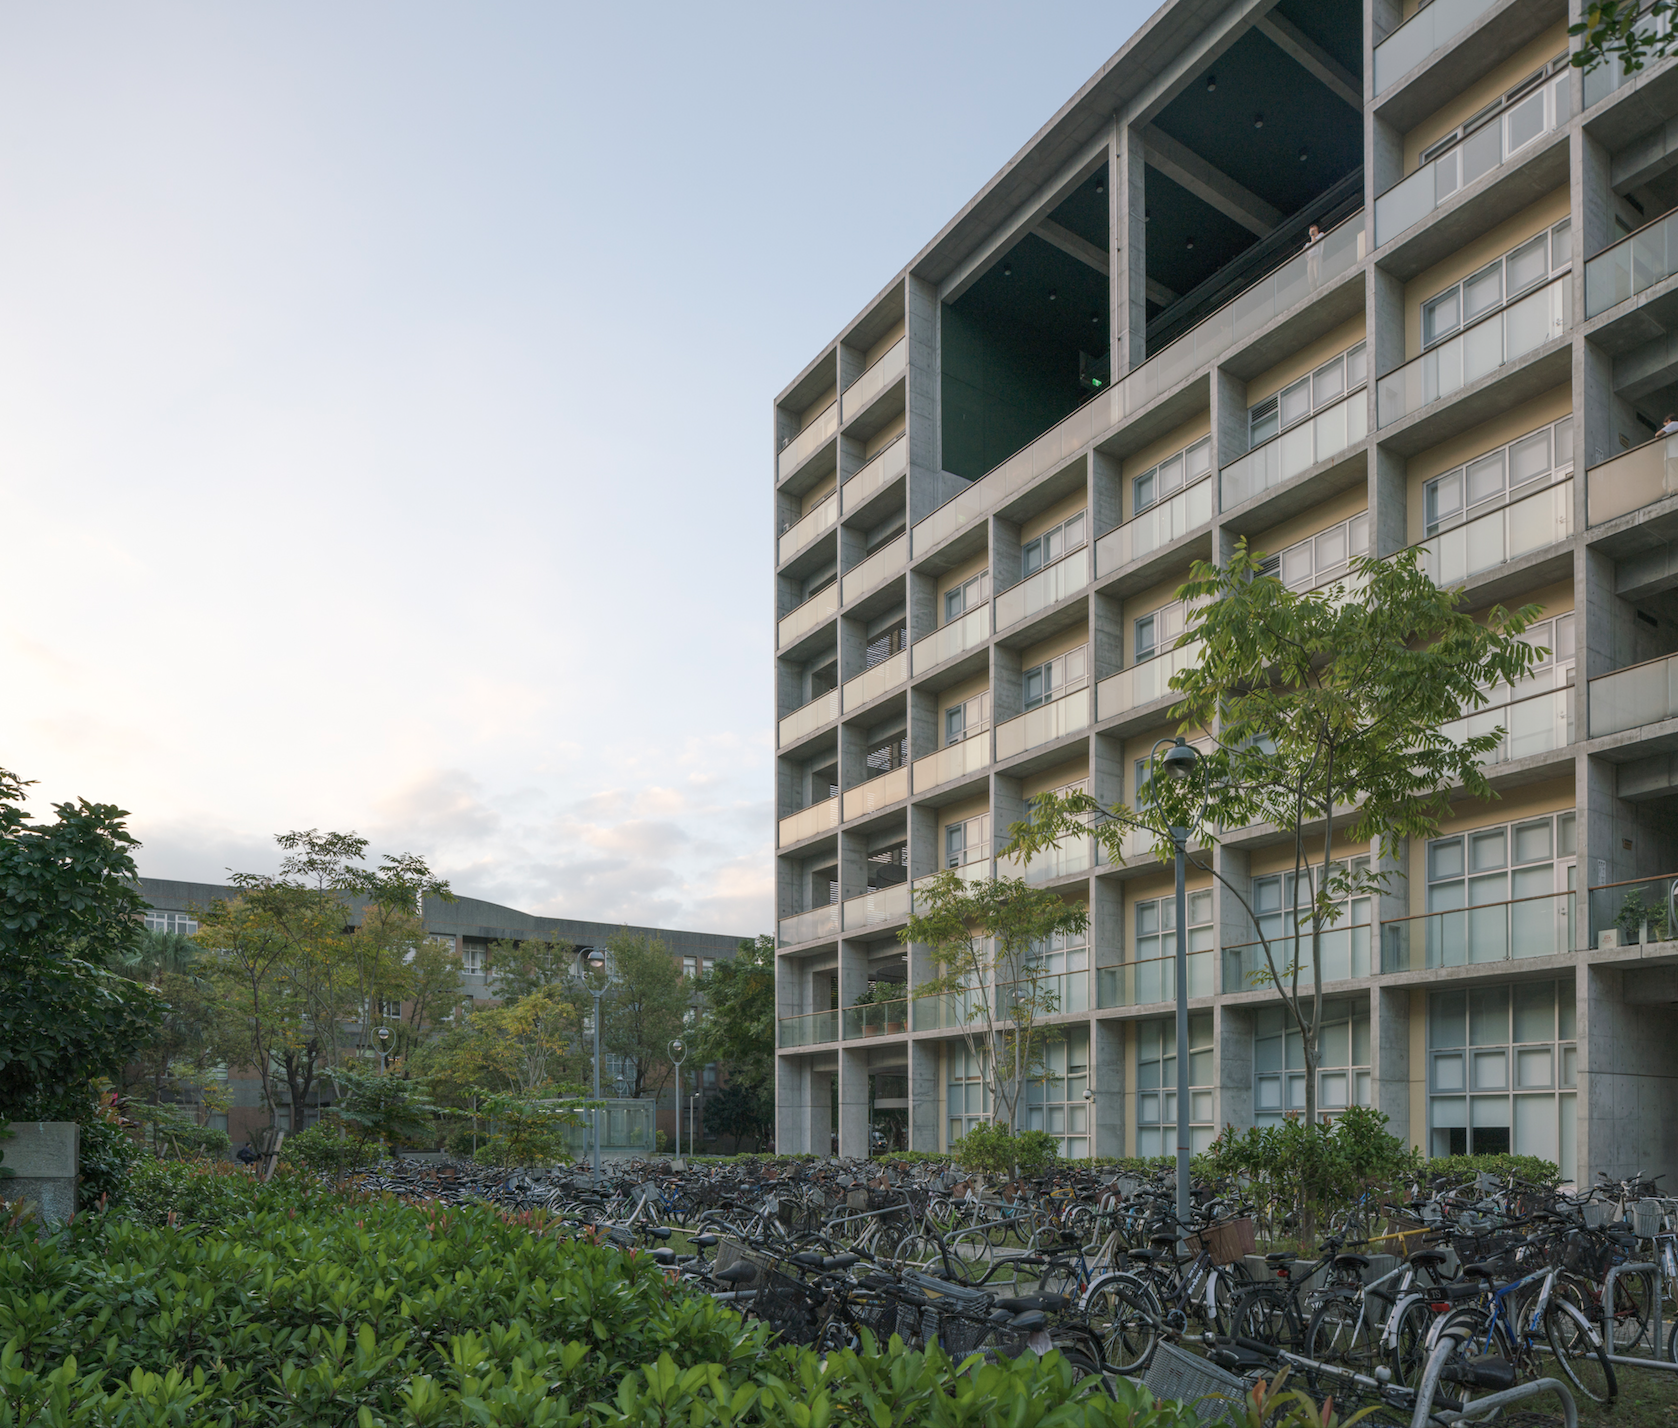 National Taiwan University — Studio Periphery